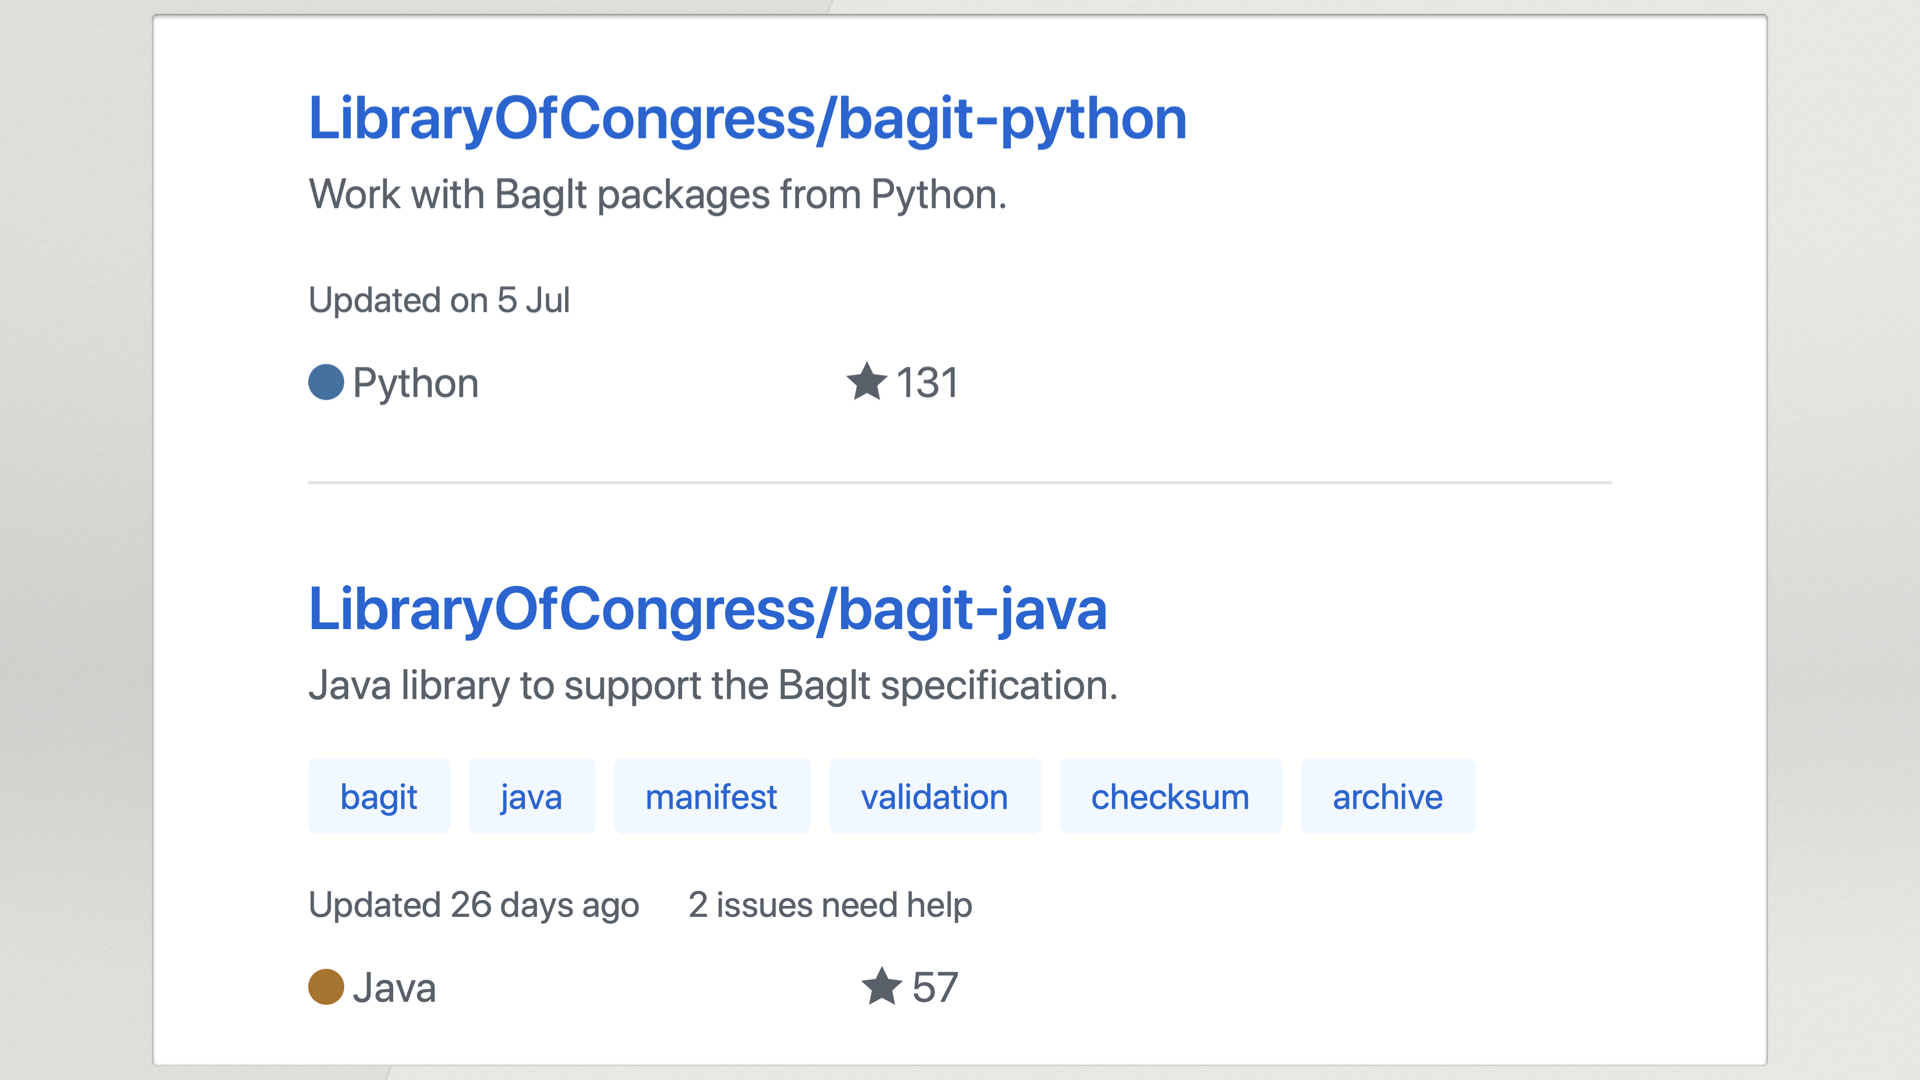 GitHub search result for two libraries: LibraryOfCongress/bagit-python, and LibraryOfCongress/bagit-java.